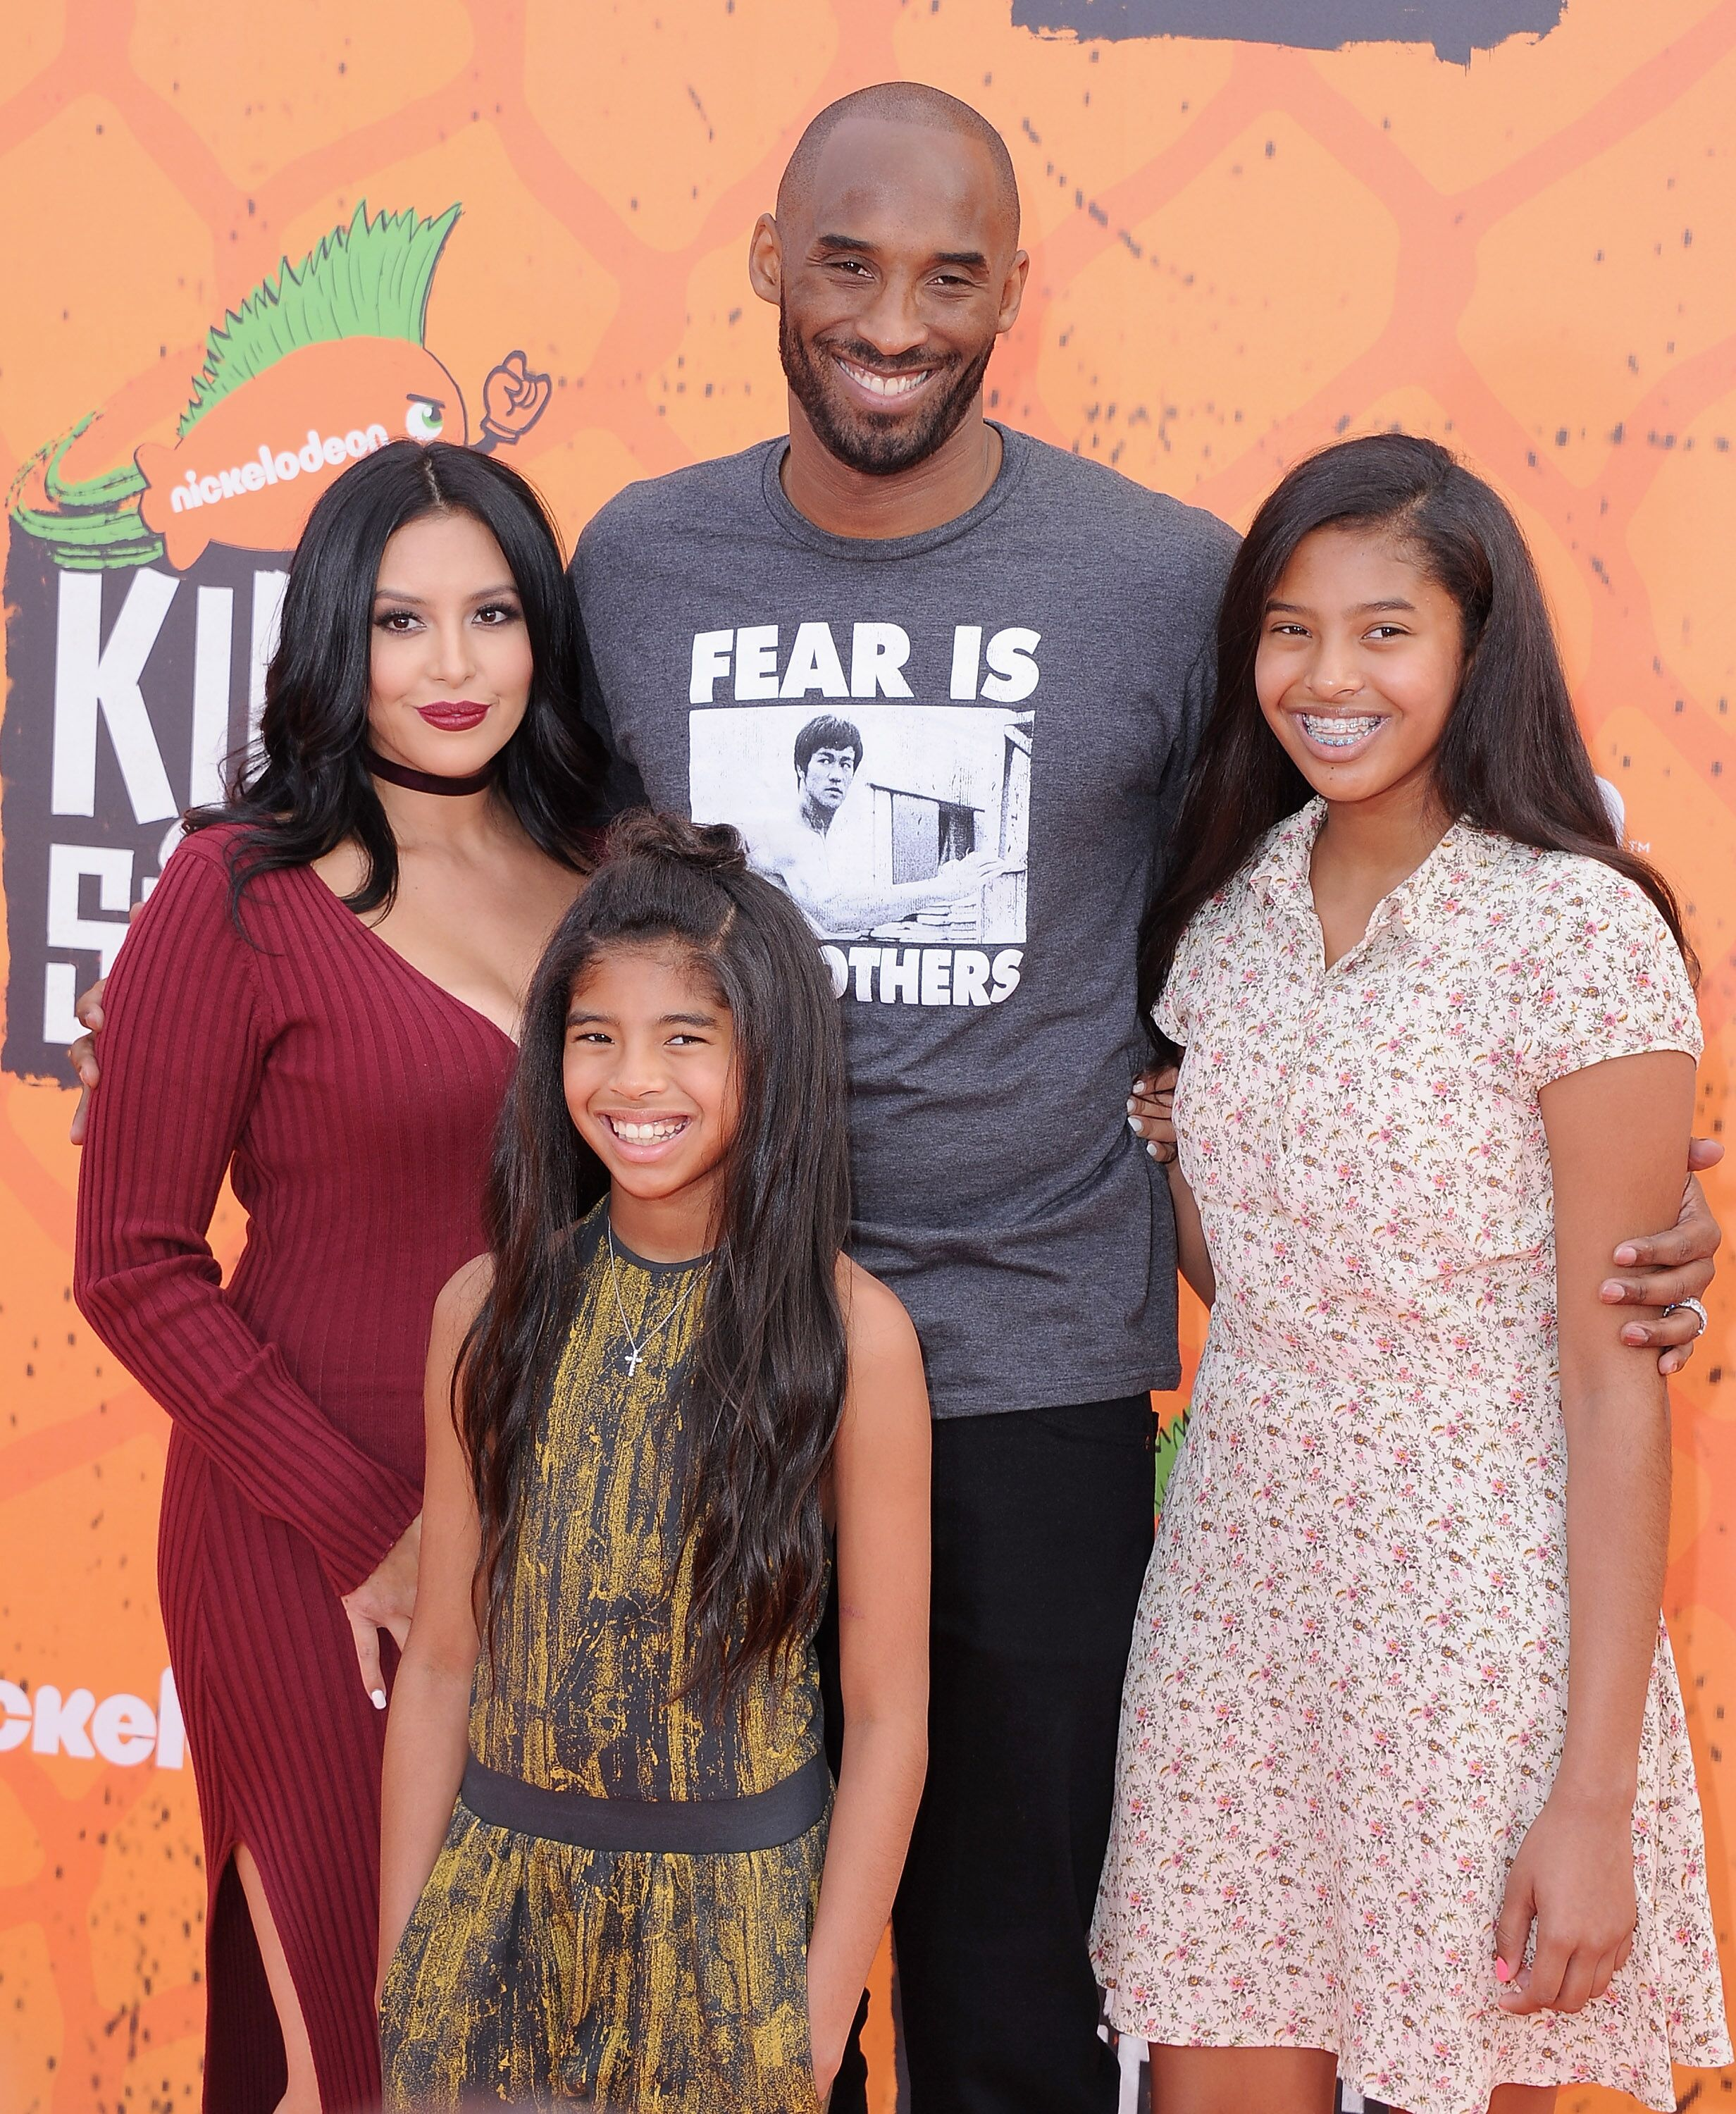 Kobe Bryant, wife Vanessa and daughters Gianna, and Natalia at the Nickelodeon Kids' Choice Sports Awards/ Source: Getty Images